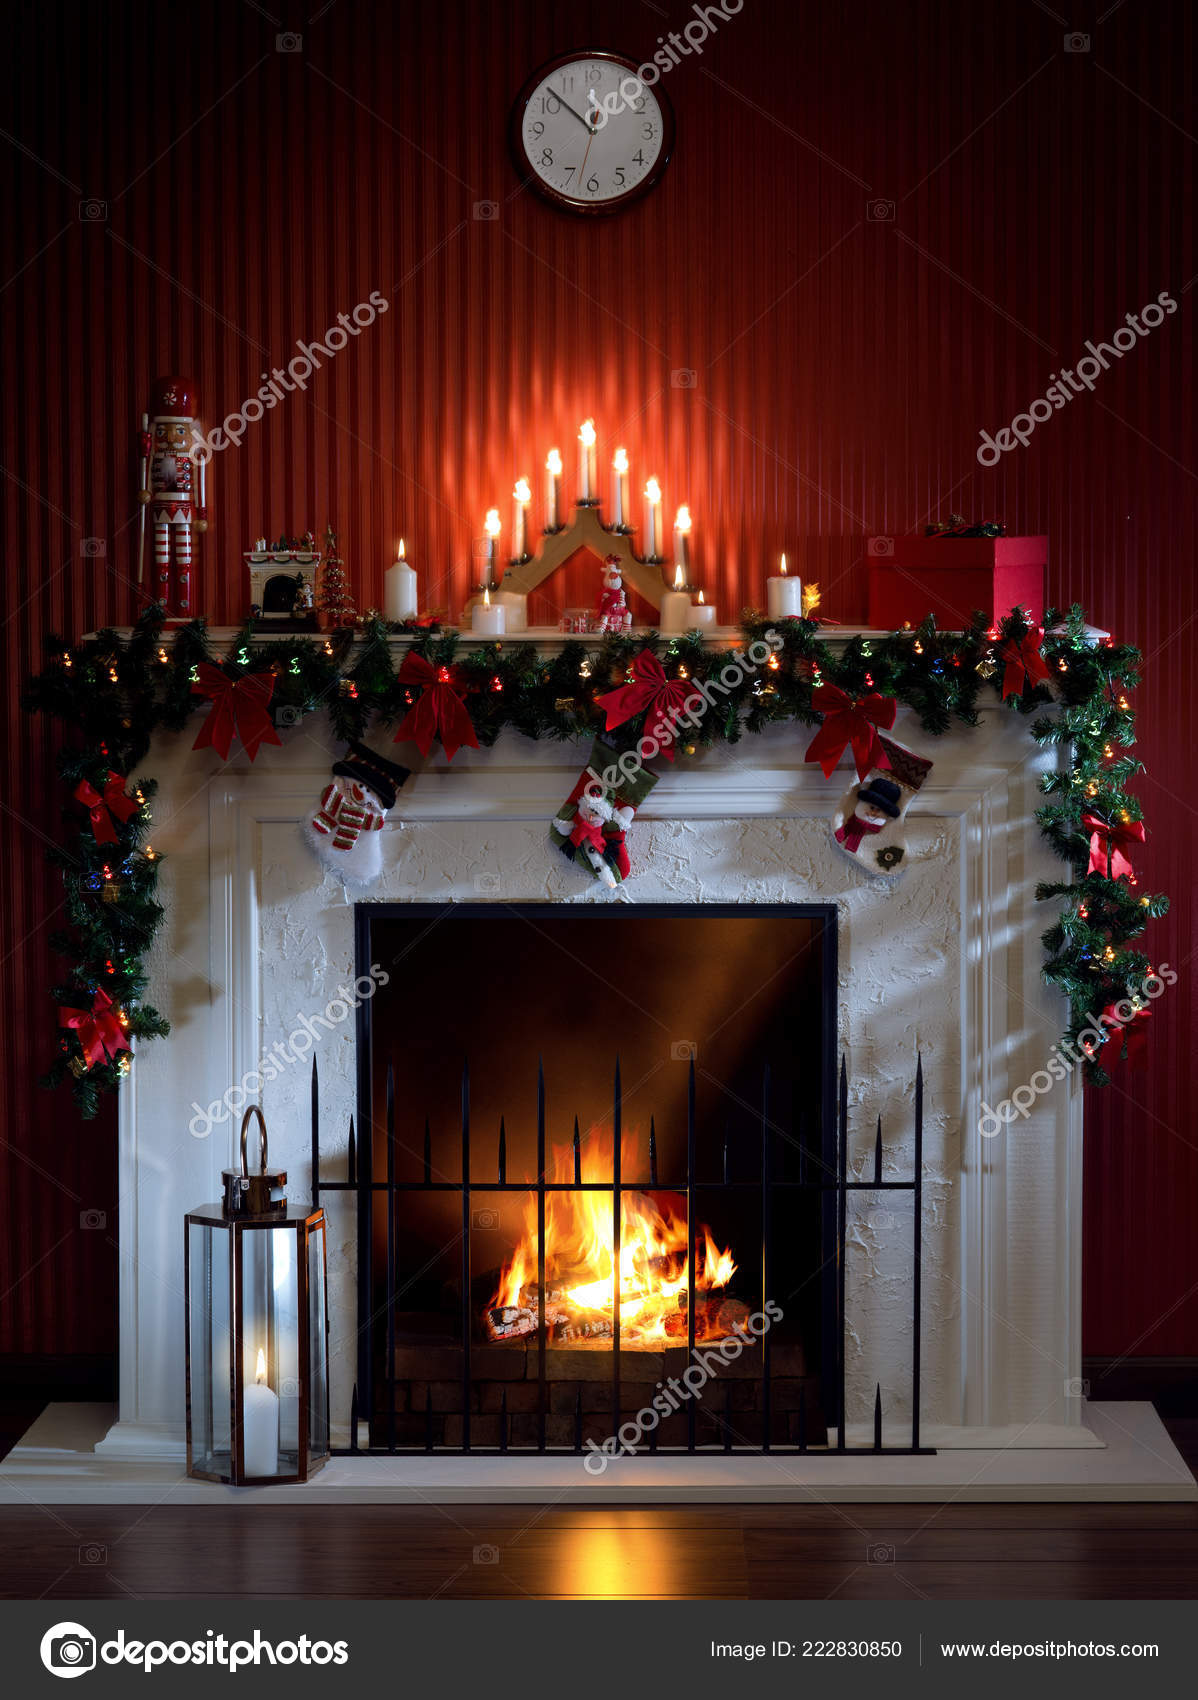 View Nice White Christmas Decorated Fireplace Candles Stock